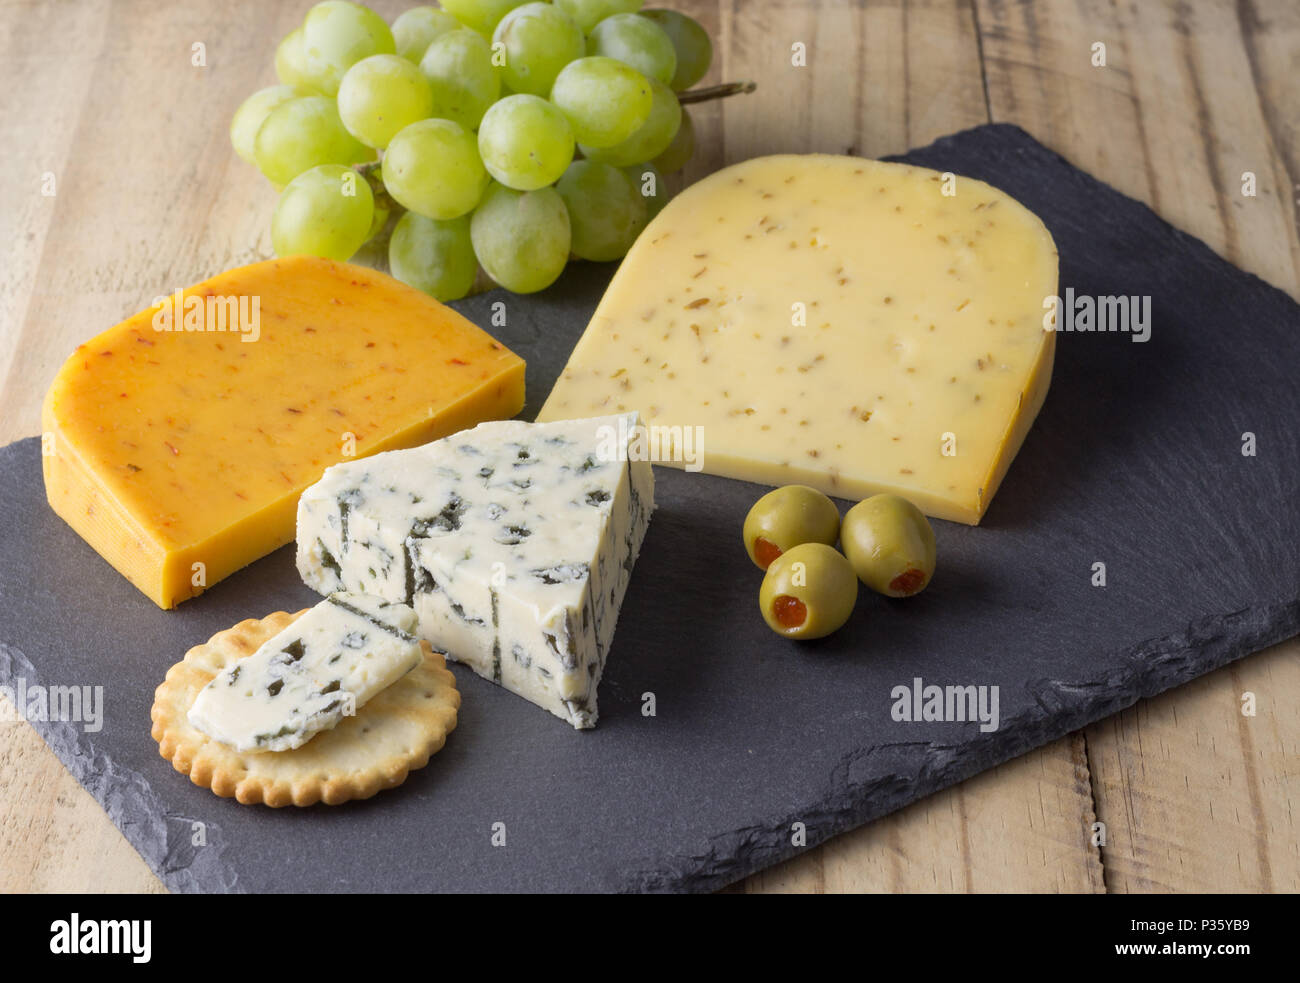 Cheese board with three cheeses, gouda with pimento, gouda with cumin seeds and roquefort blue cheese close up on rustic wooden background Stock Photo